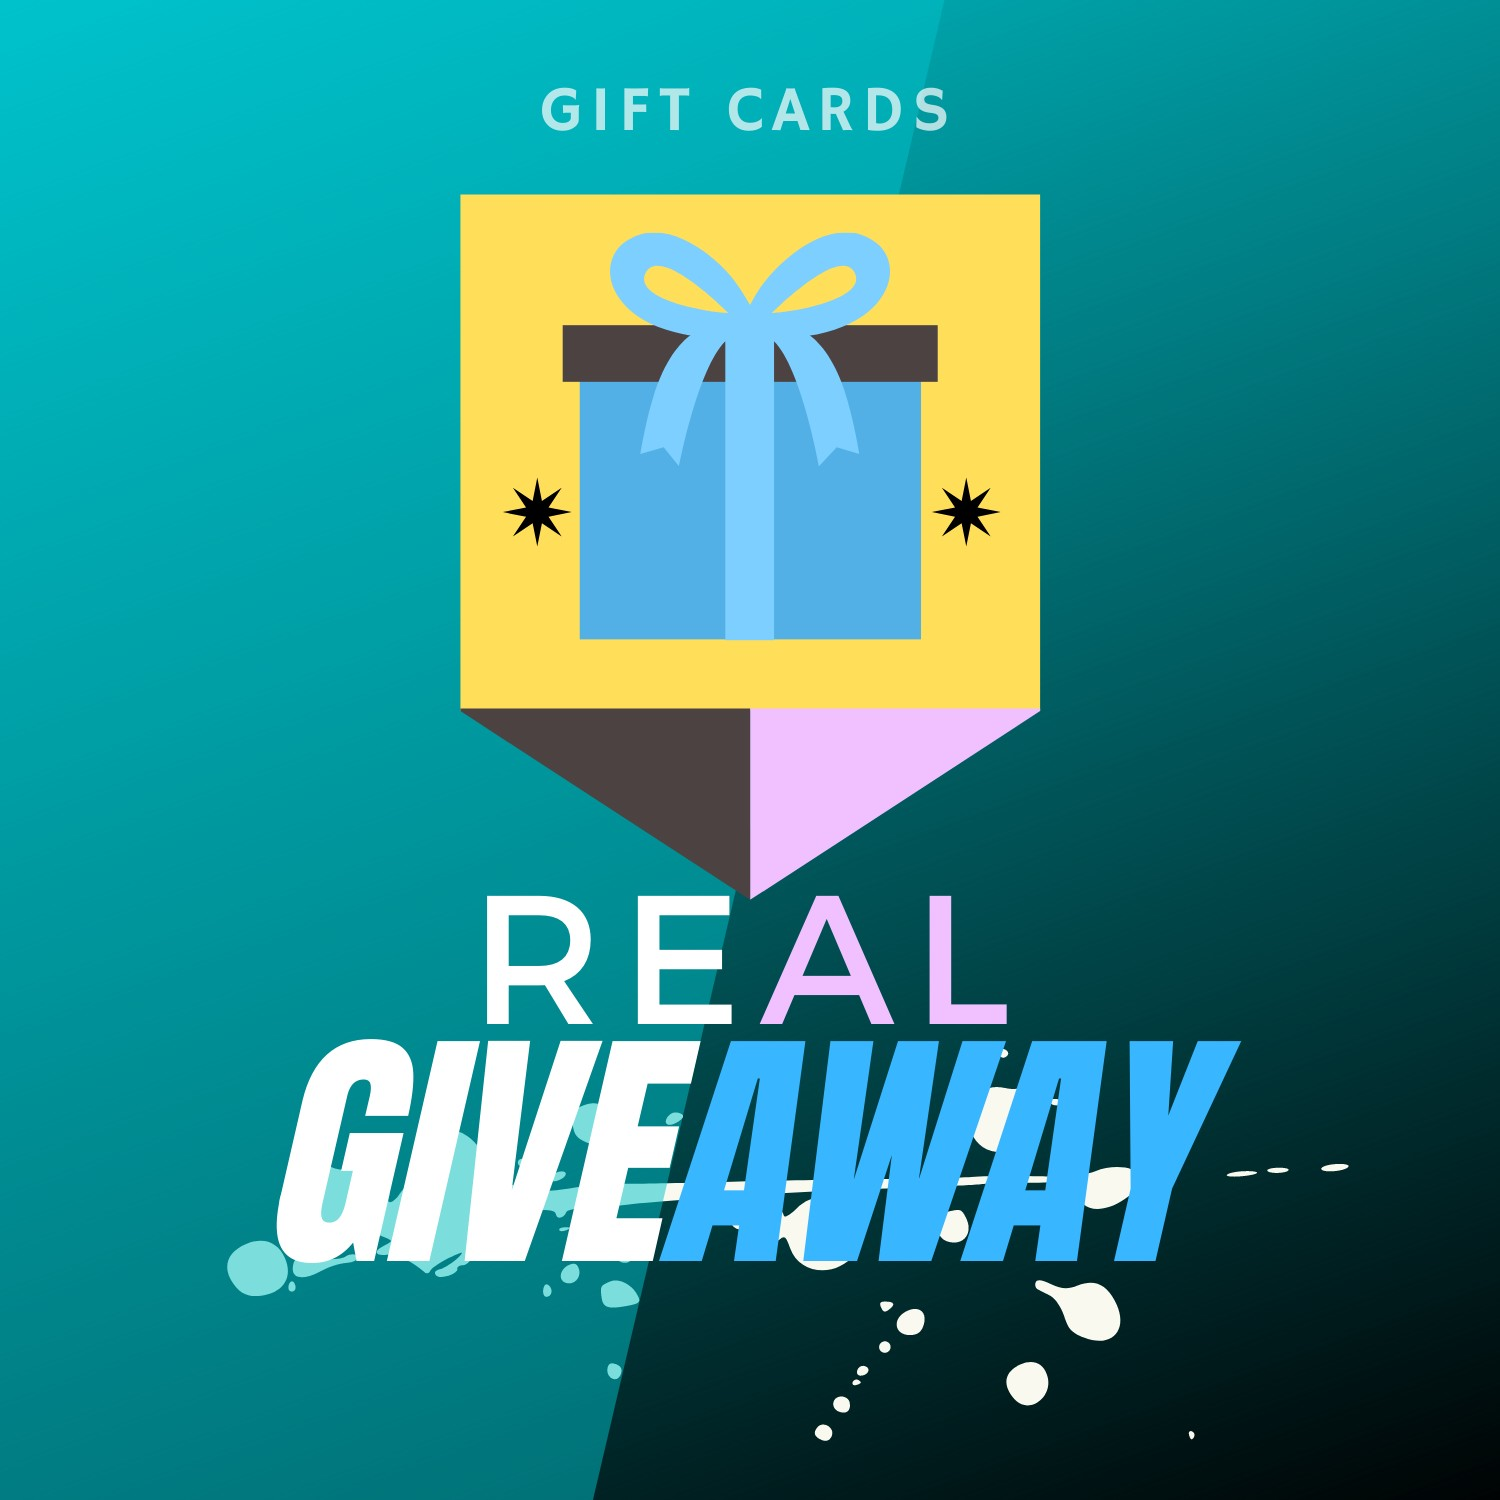 REAL GIVEAWAY SPACE